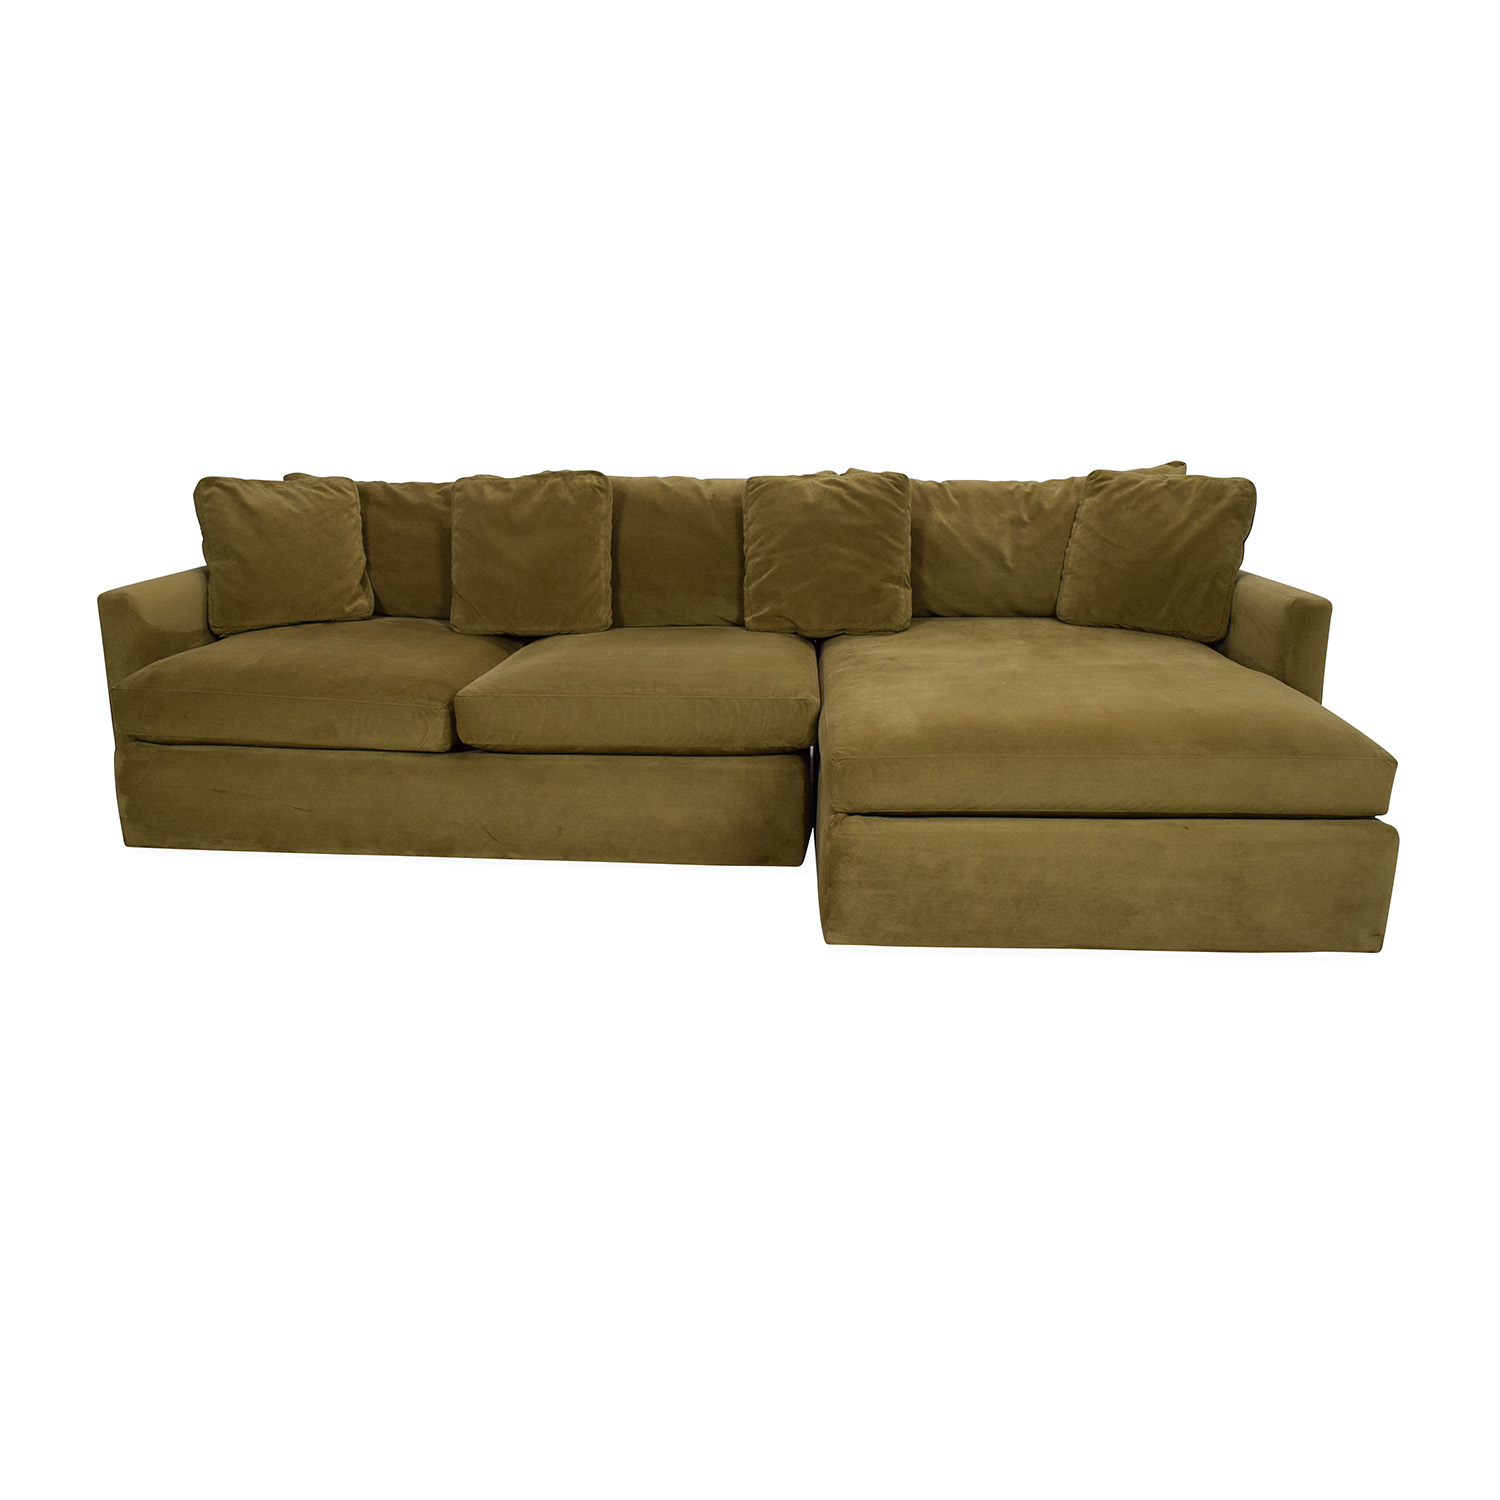 Crate And Barrel Lounge Ii Sectional Sofa For